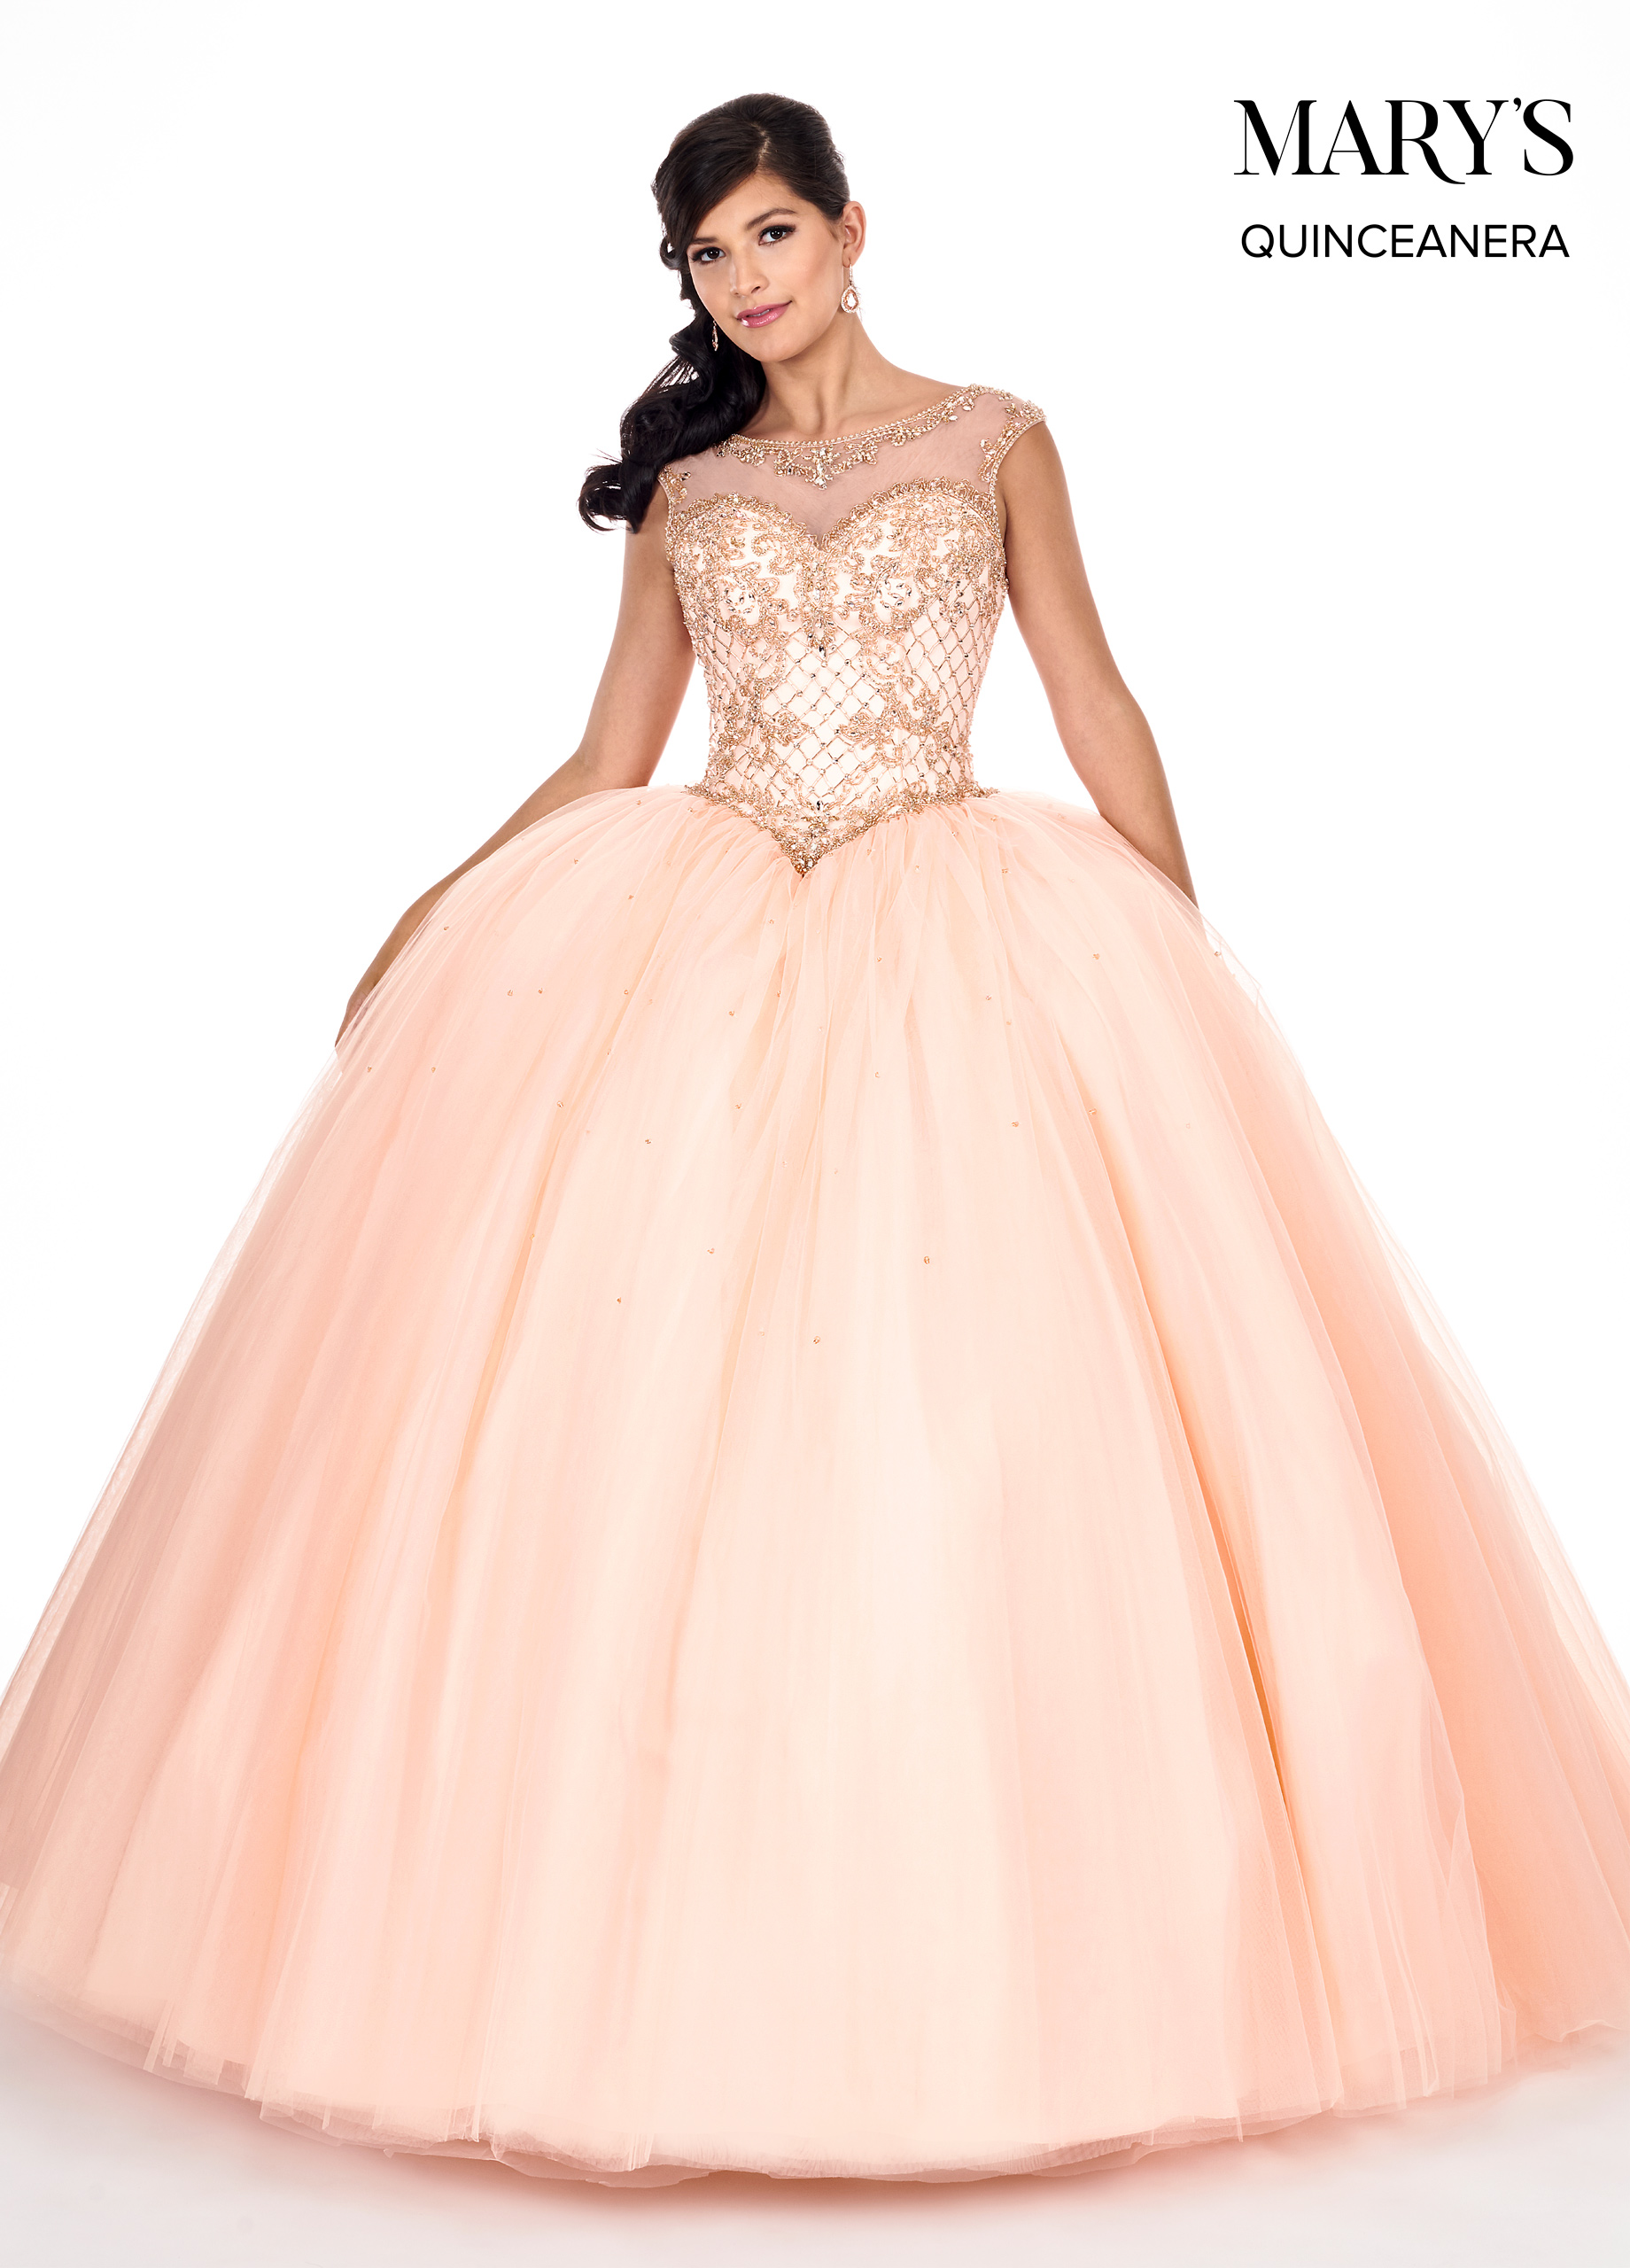 Marys Quinceanera Dresses | Mary's Quinceanera | Style - MQ2047